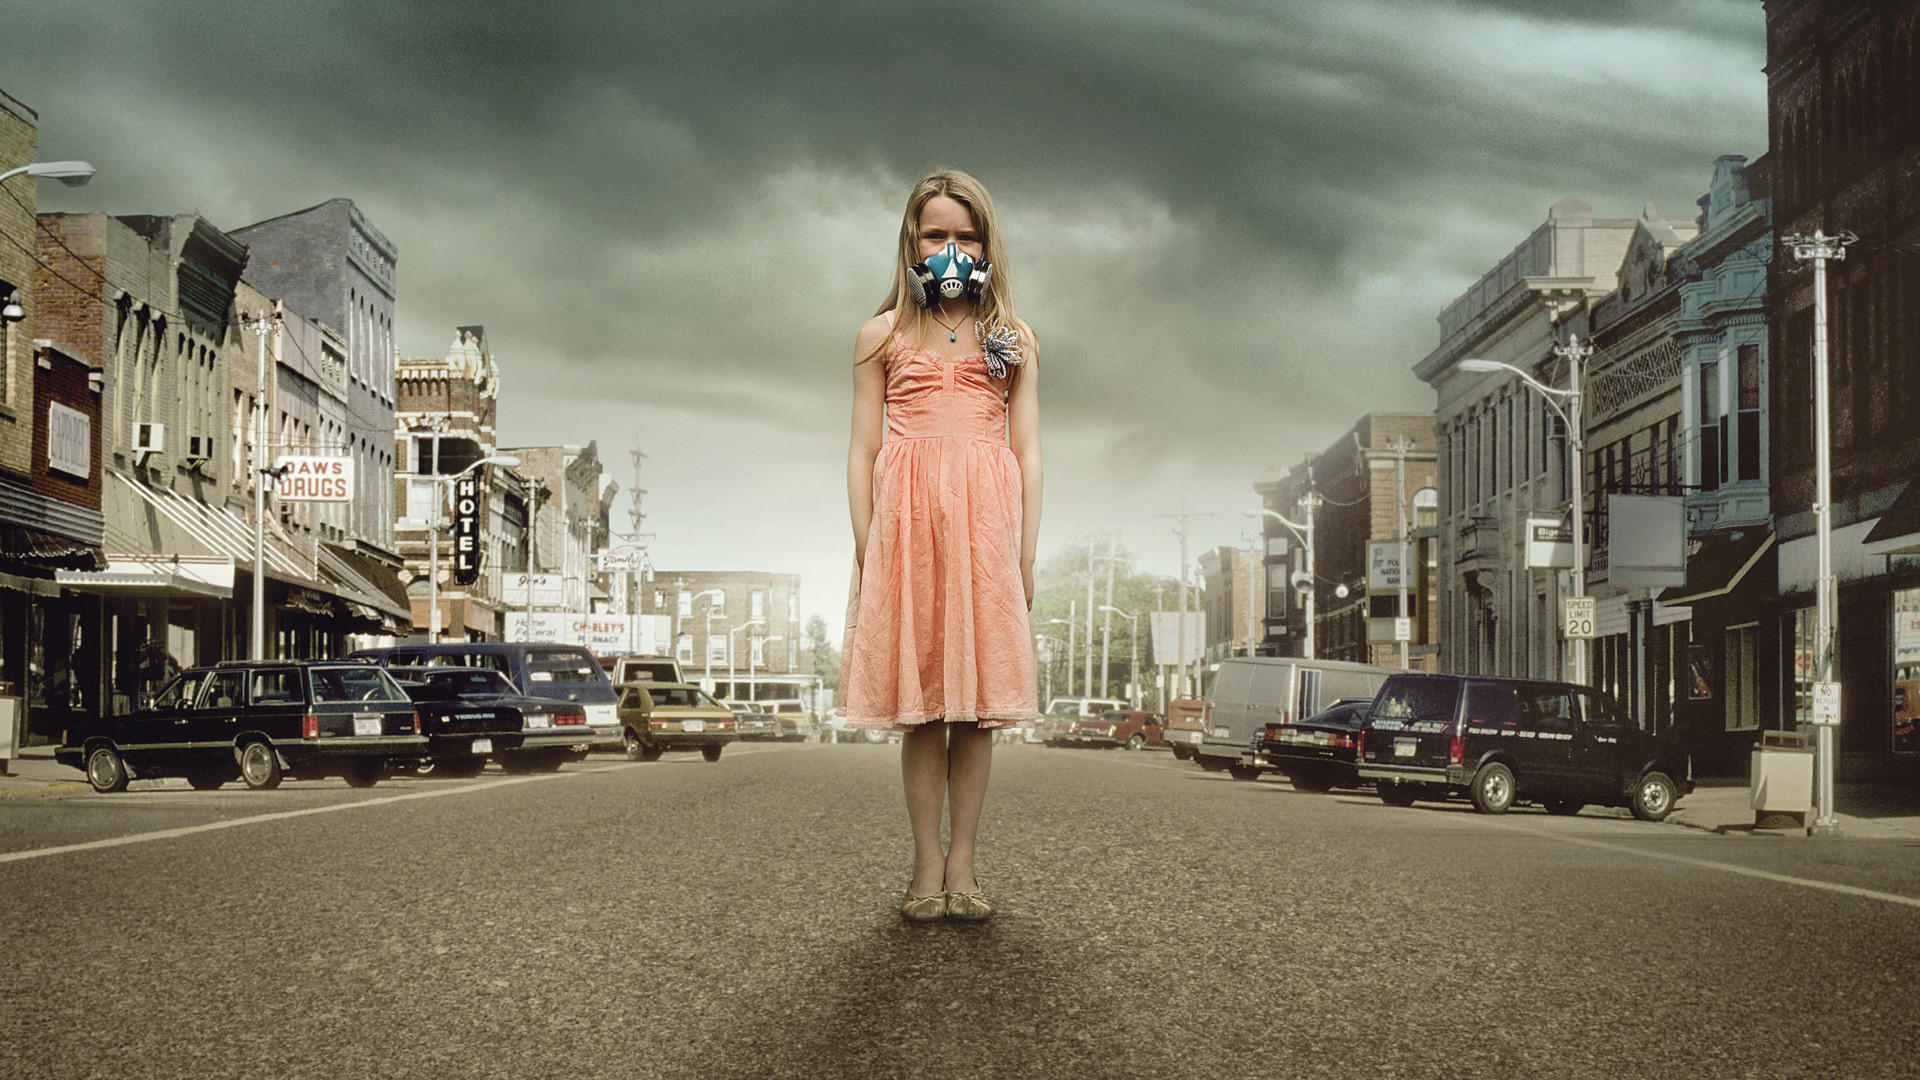 Simple Girl Wallpaper Image 13 The Crazies Hd Wallpapers Background Images